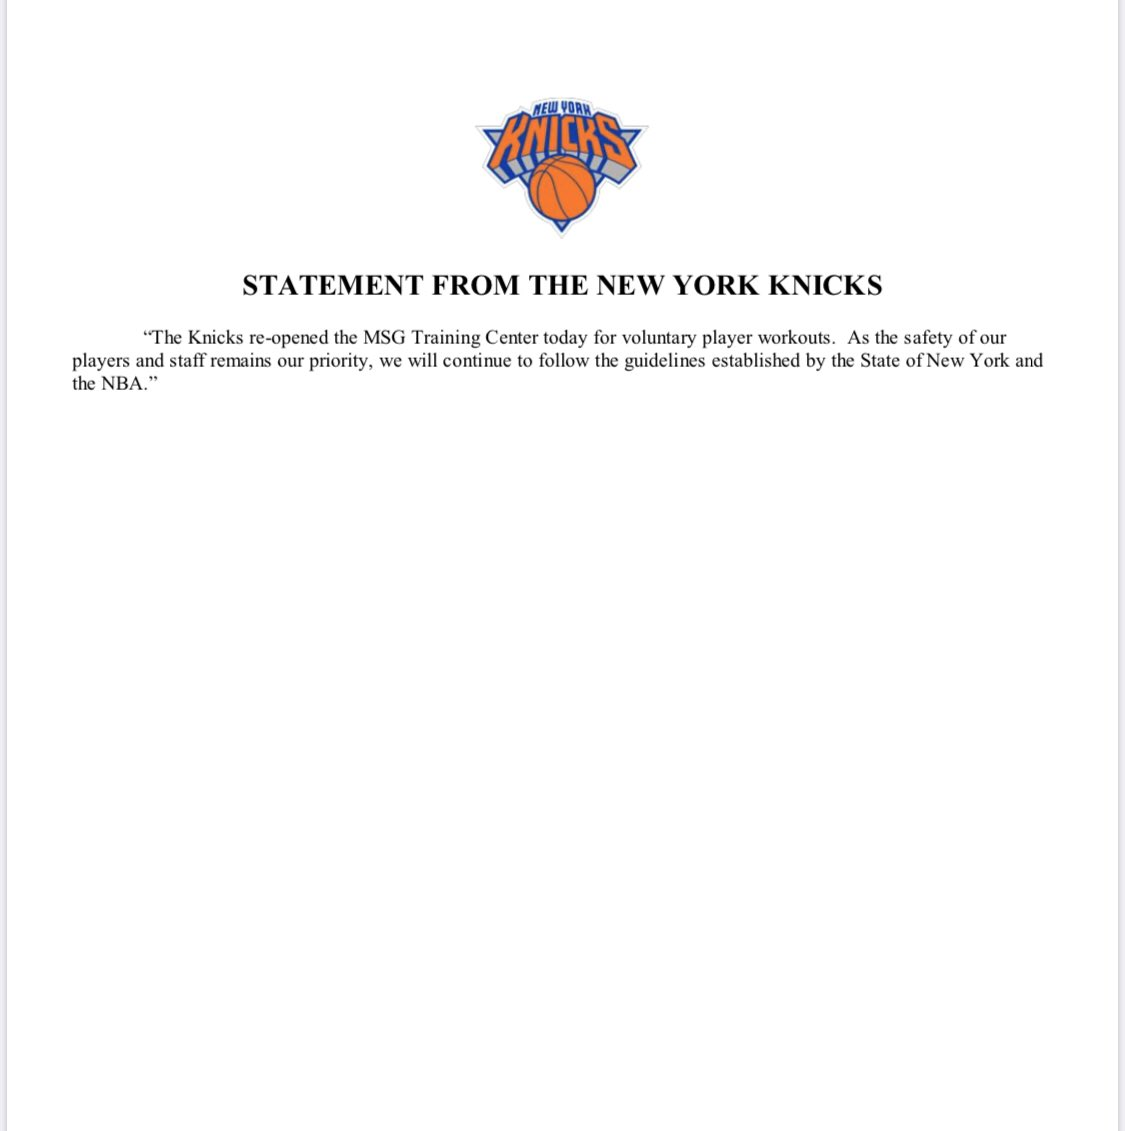 STATEMENT FROM THE NEW YORK KNICKS https://t.co/K3IeGjndiP